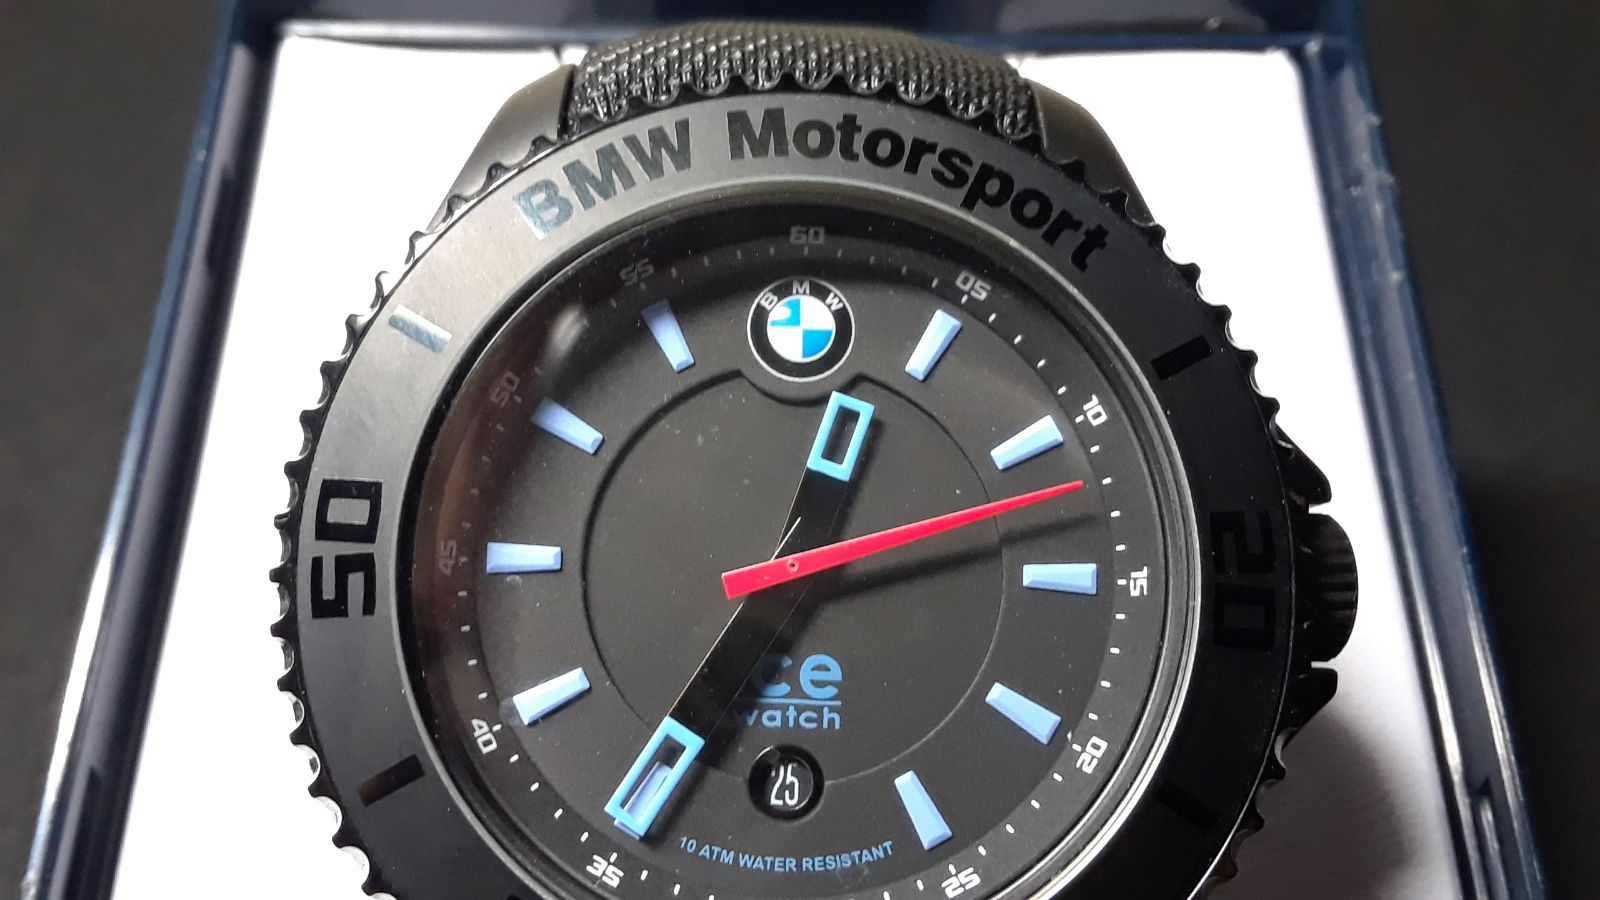 BMW Motorsport wristwatch